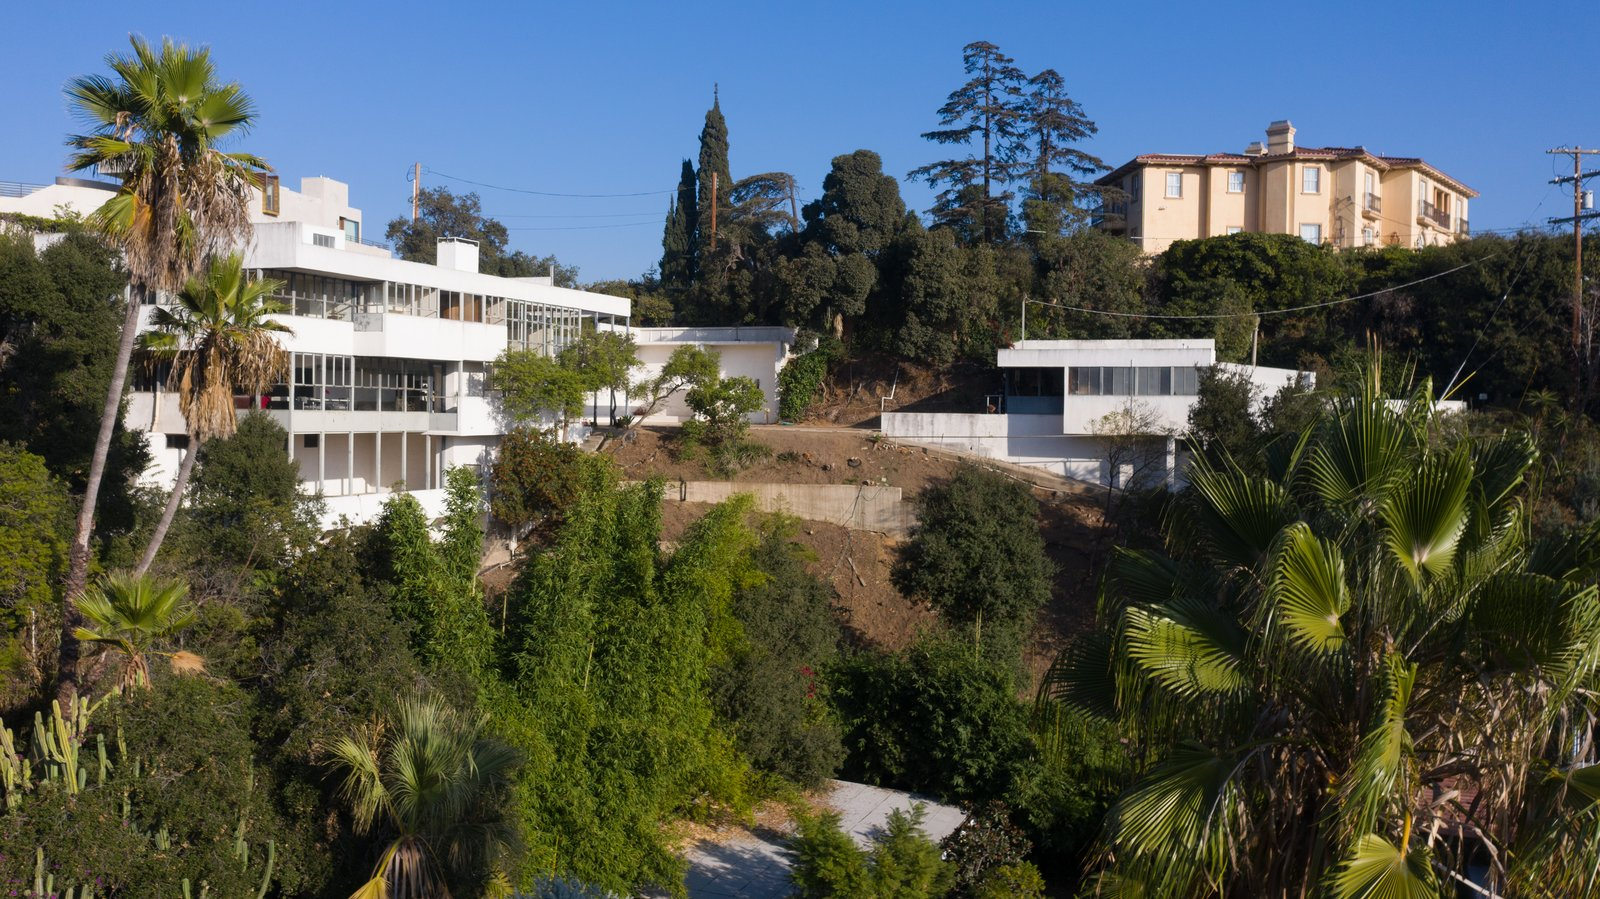 Lovell Health House by Richard Neutra